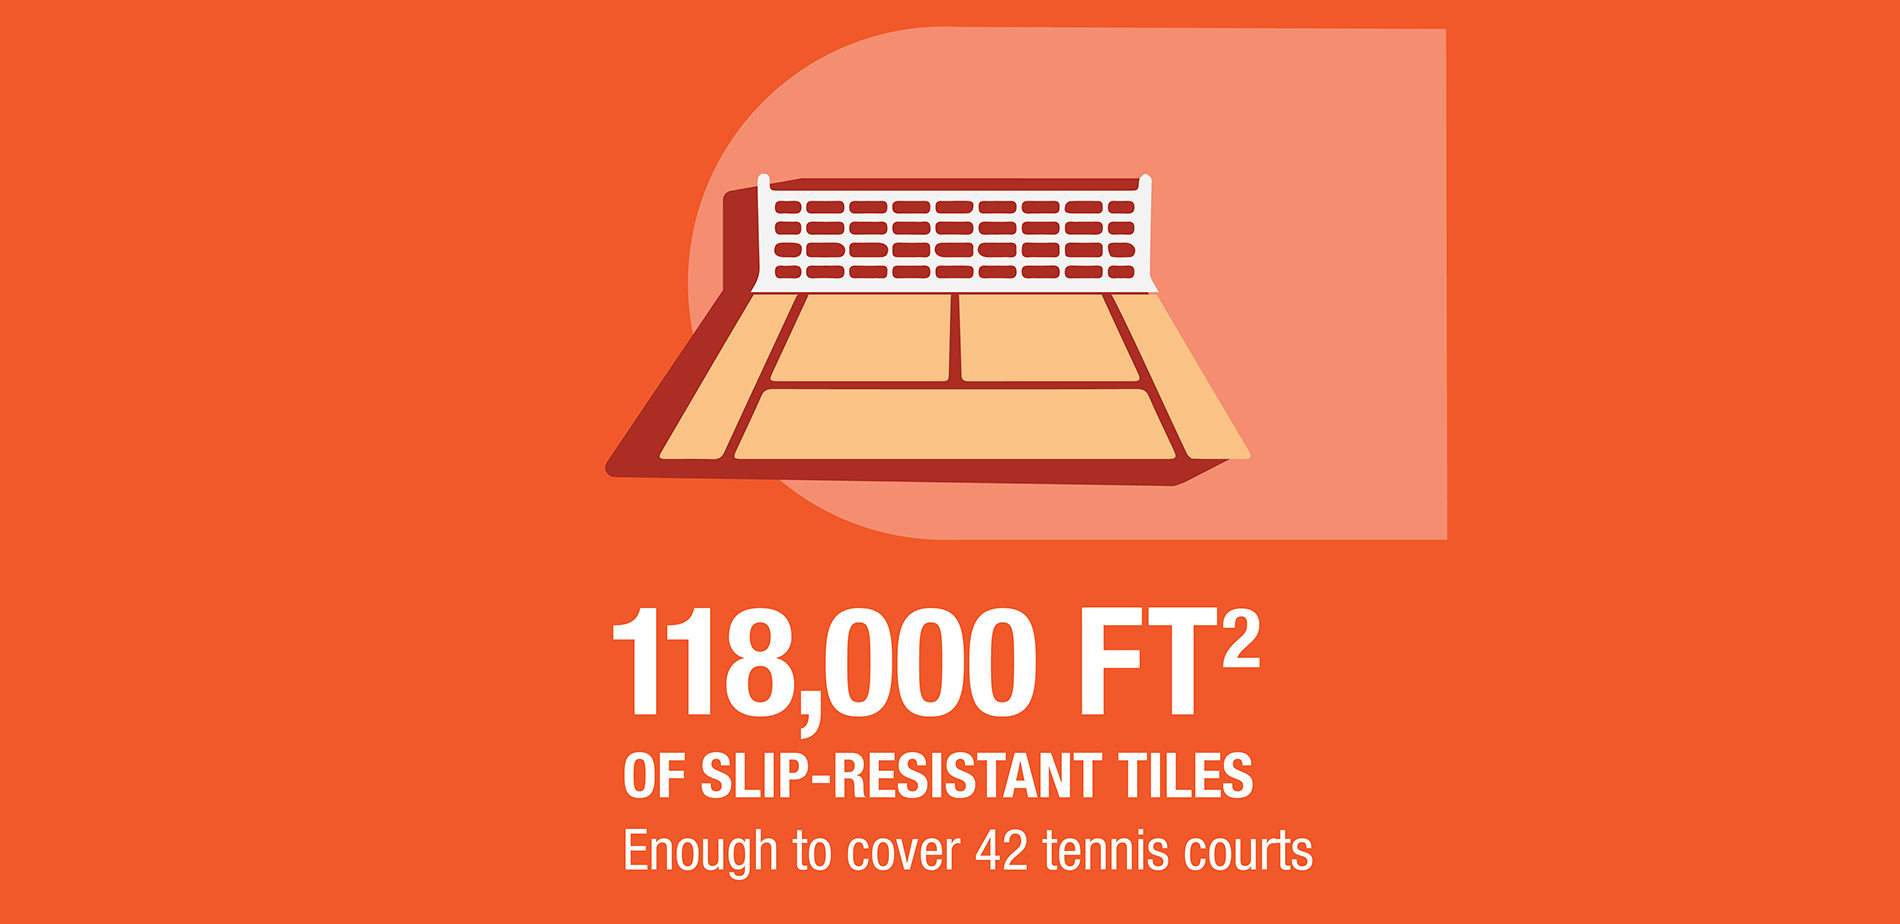 118,000 square feet of slip-resistant tiles, enough to cover 42 tennis courts